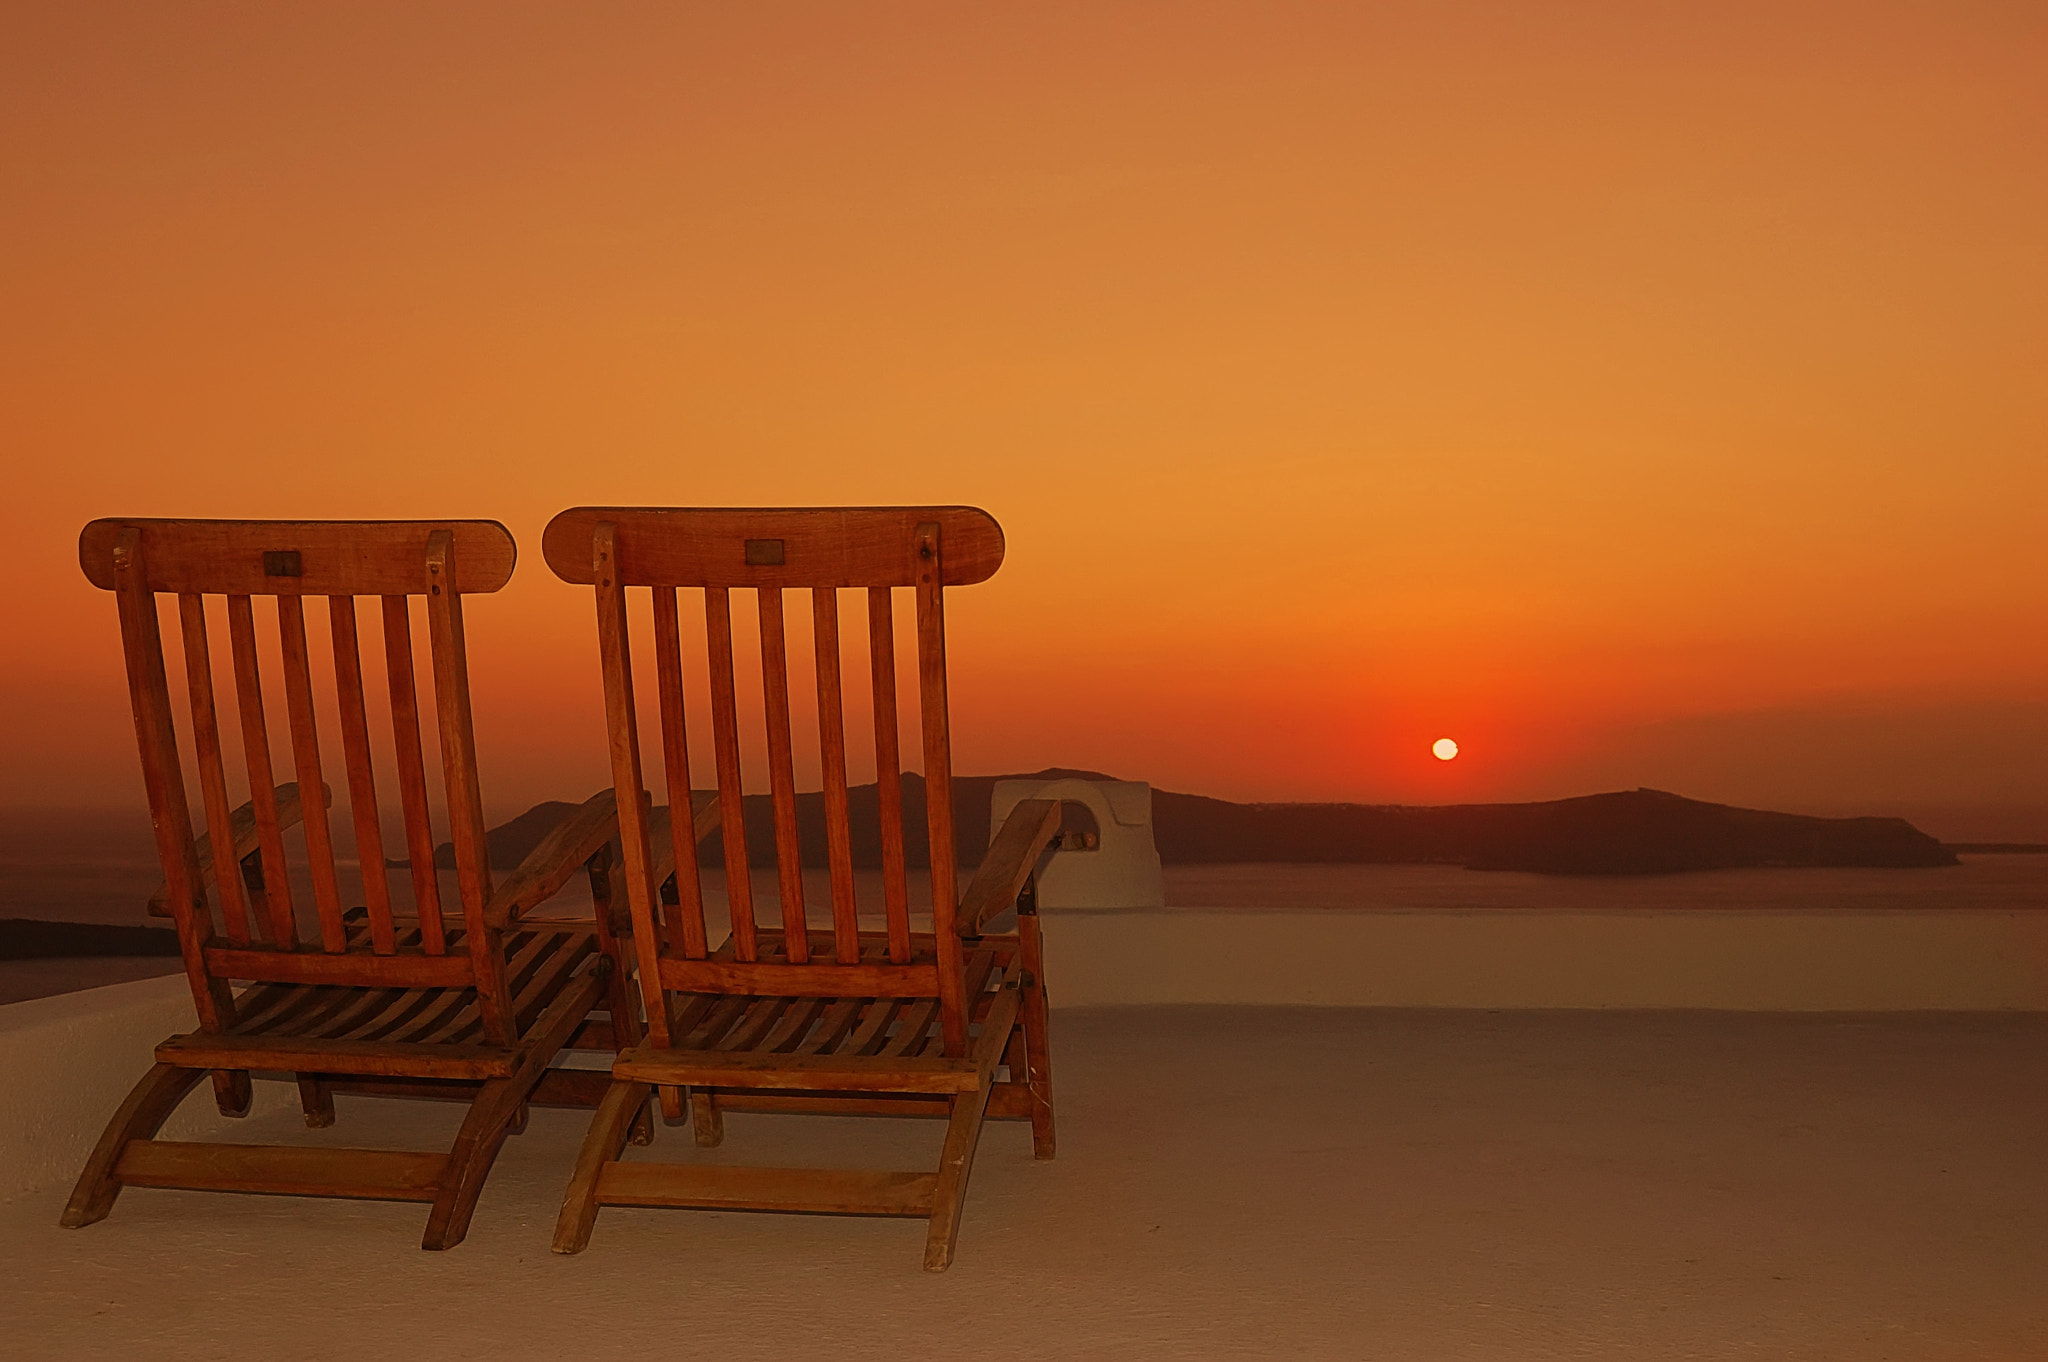 Photograph Inviting Chairs by Csilla Zelko on 500px